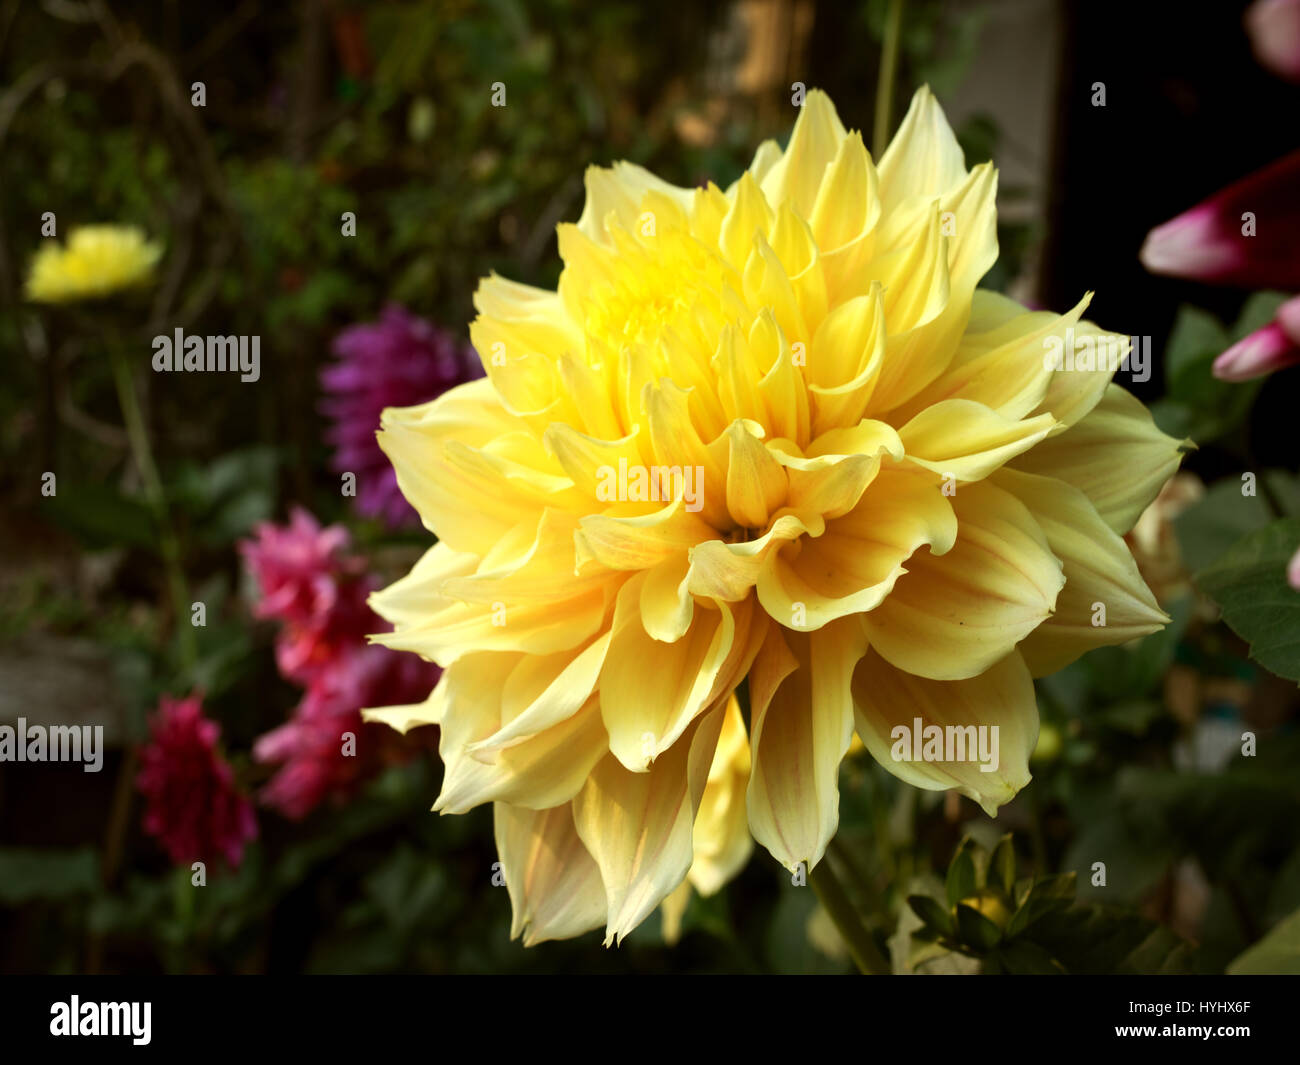 Beautiful Flower - Stock Image